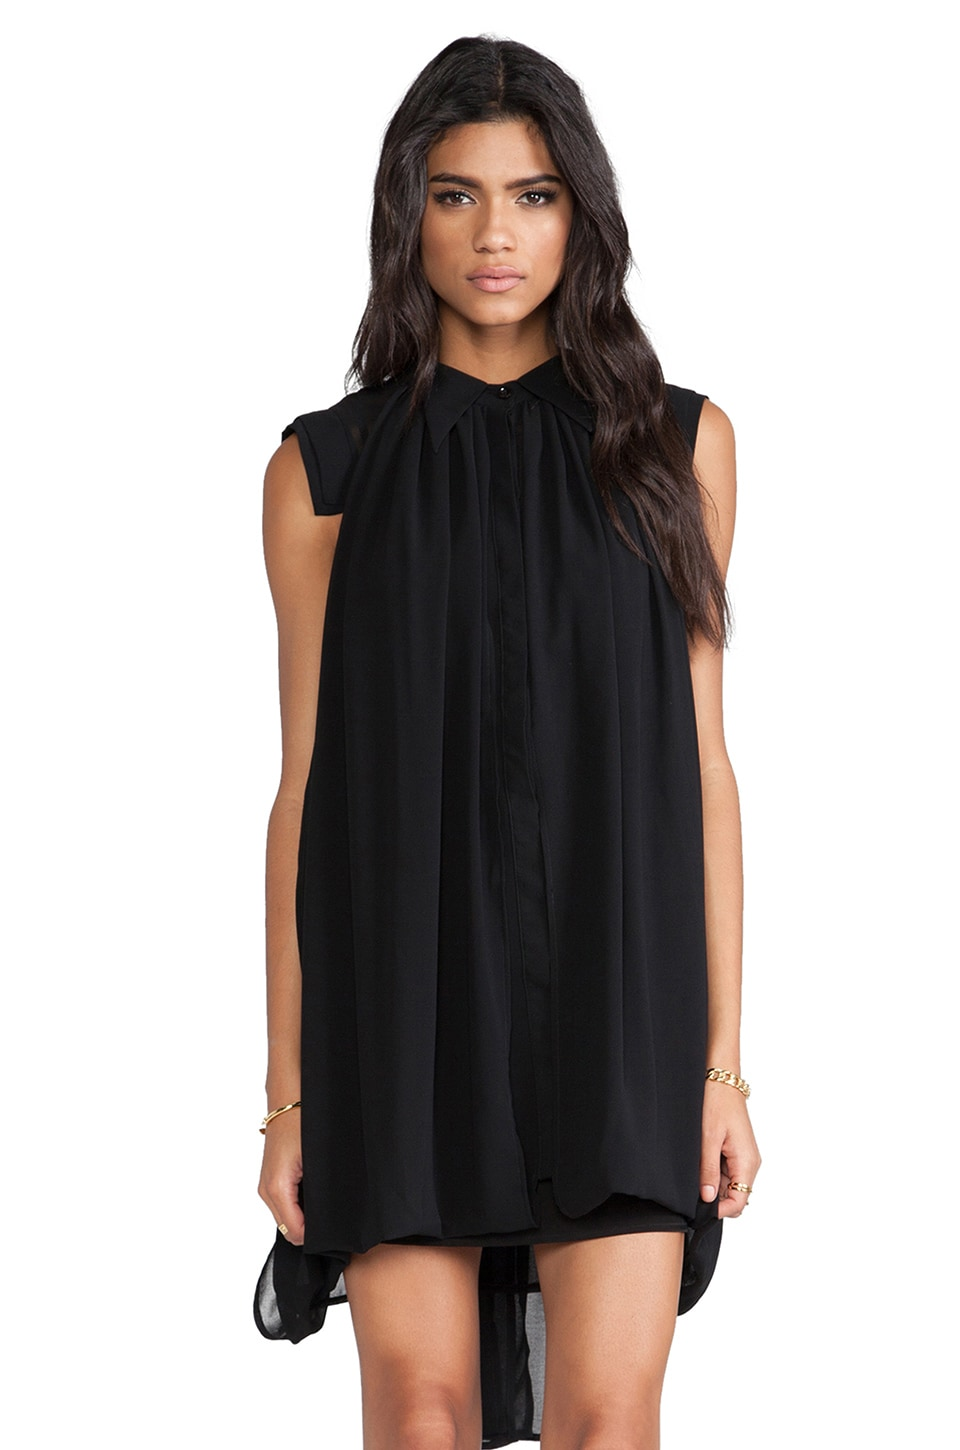 C/MEO Summertime Sadness Dress in Black